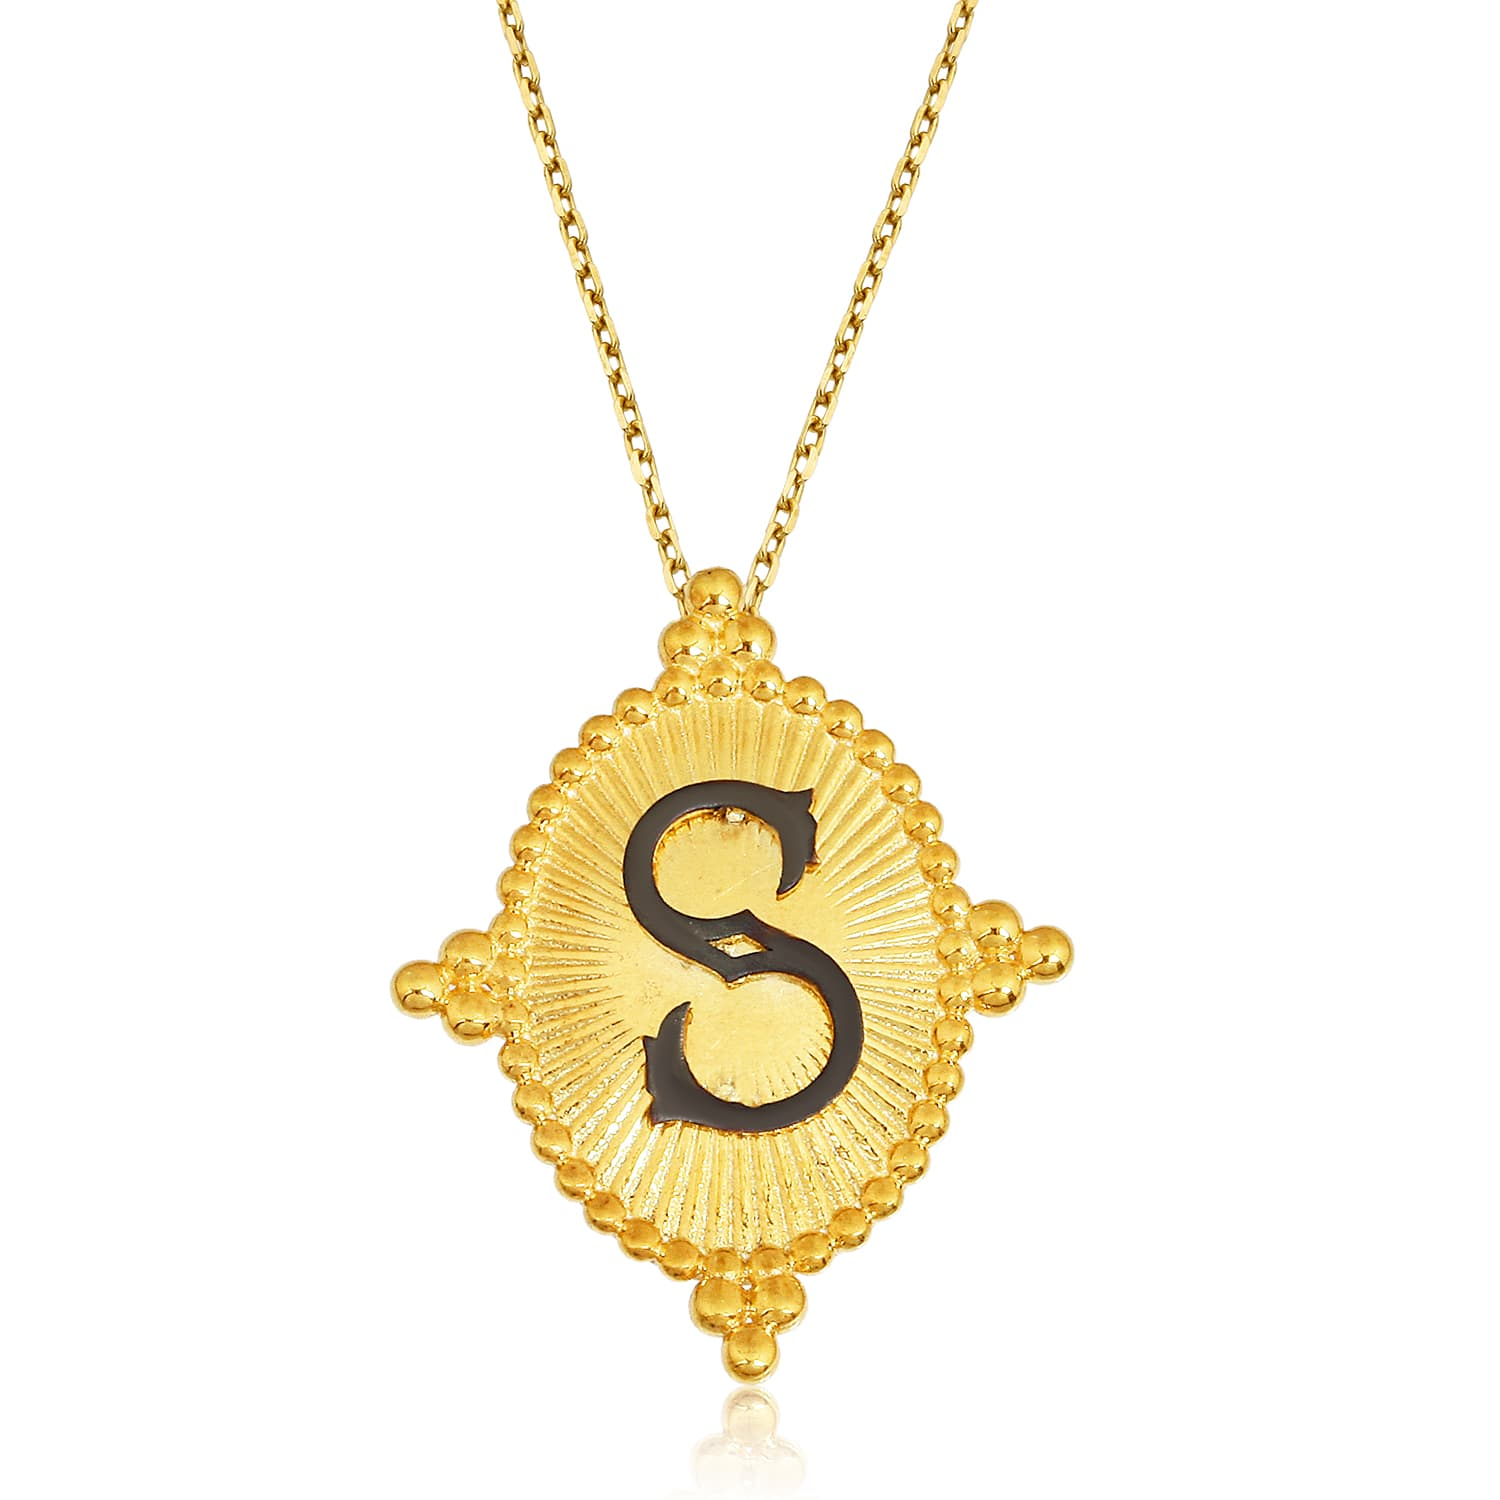 24K solid gold plated letter necklace models with real silver